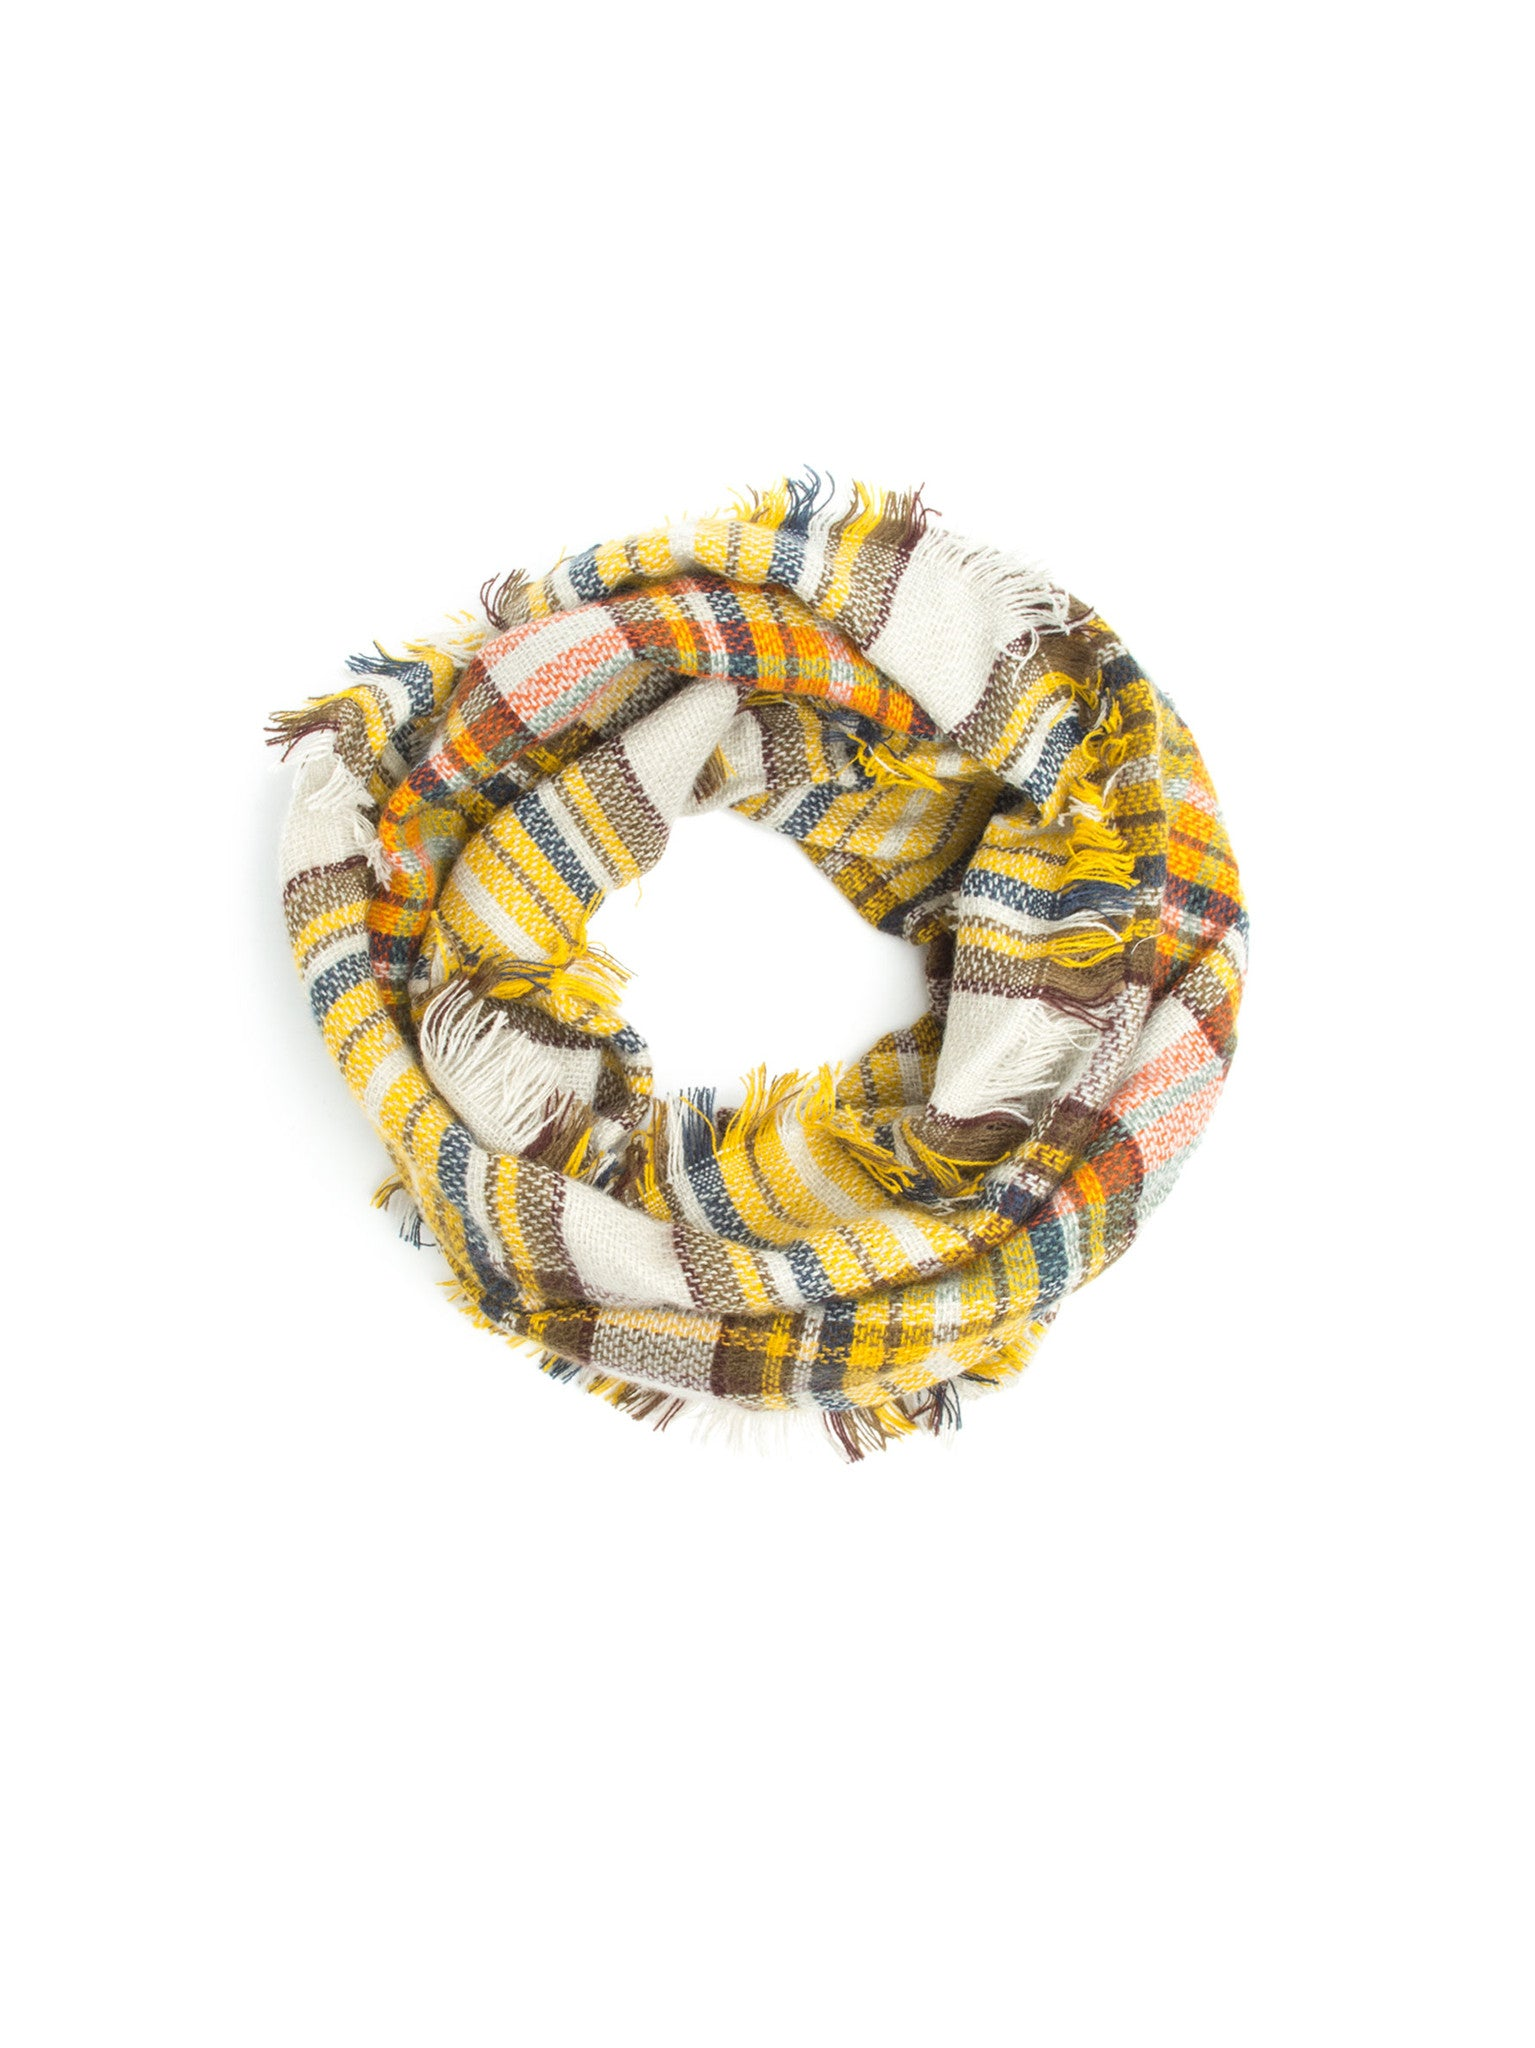 Scarves - Moira Plaid Blanket Infinity Scarf, Plaid Infinity Scarf -(Mustard) Bohomonde  - 4